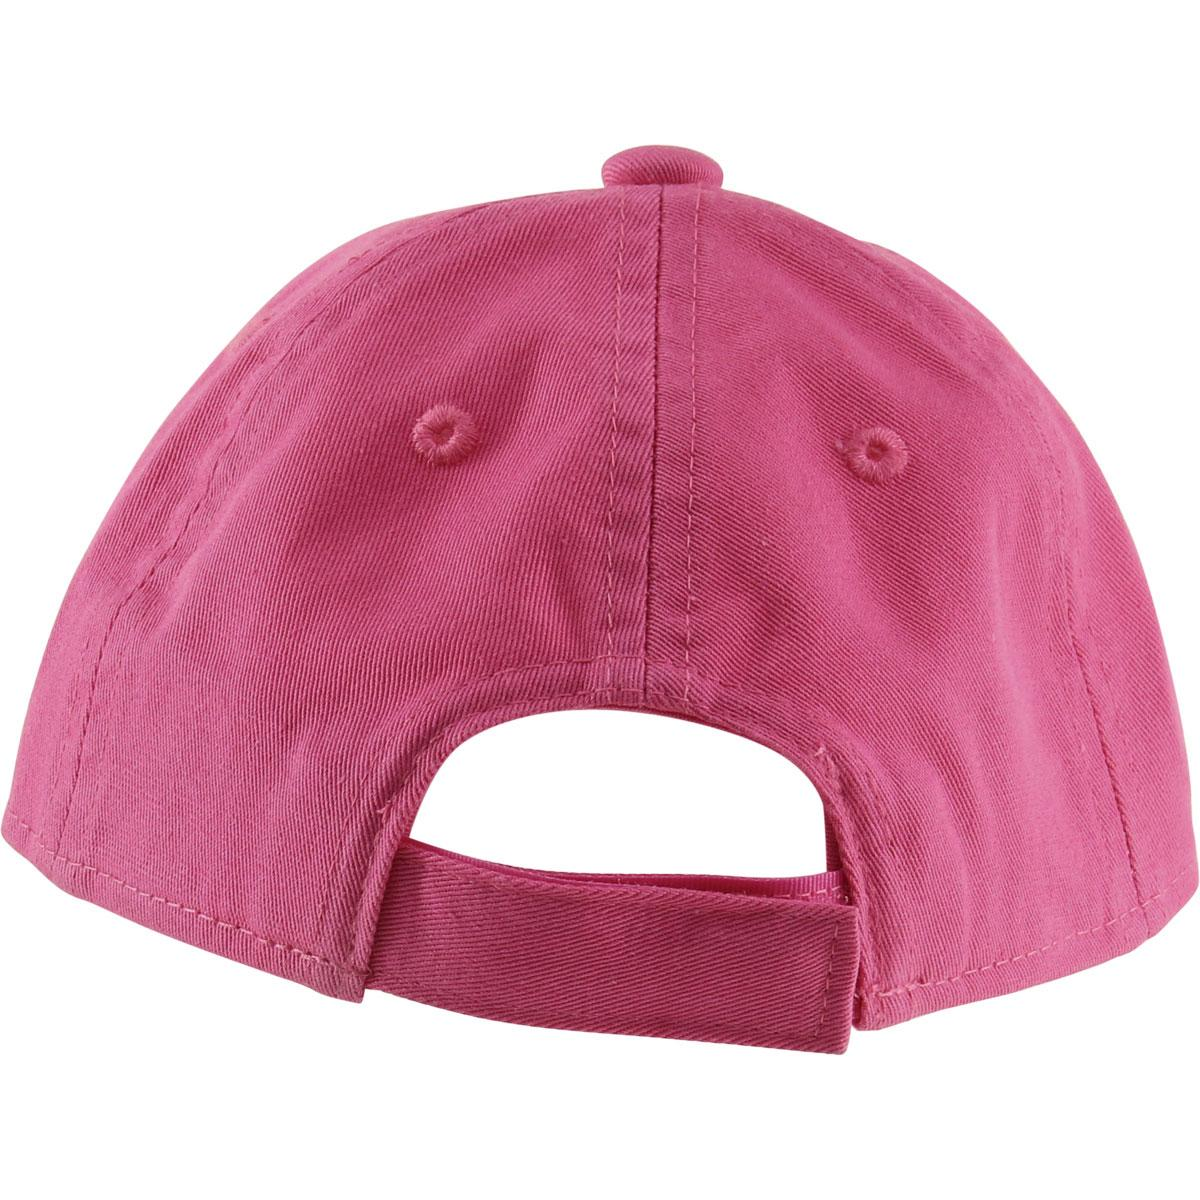 b514cfcd2dd Puma Toddler Girl s Evercat Podium Cotton Baseball Cap Hat